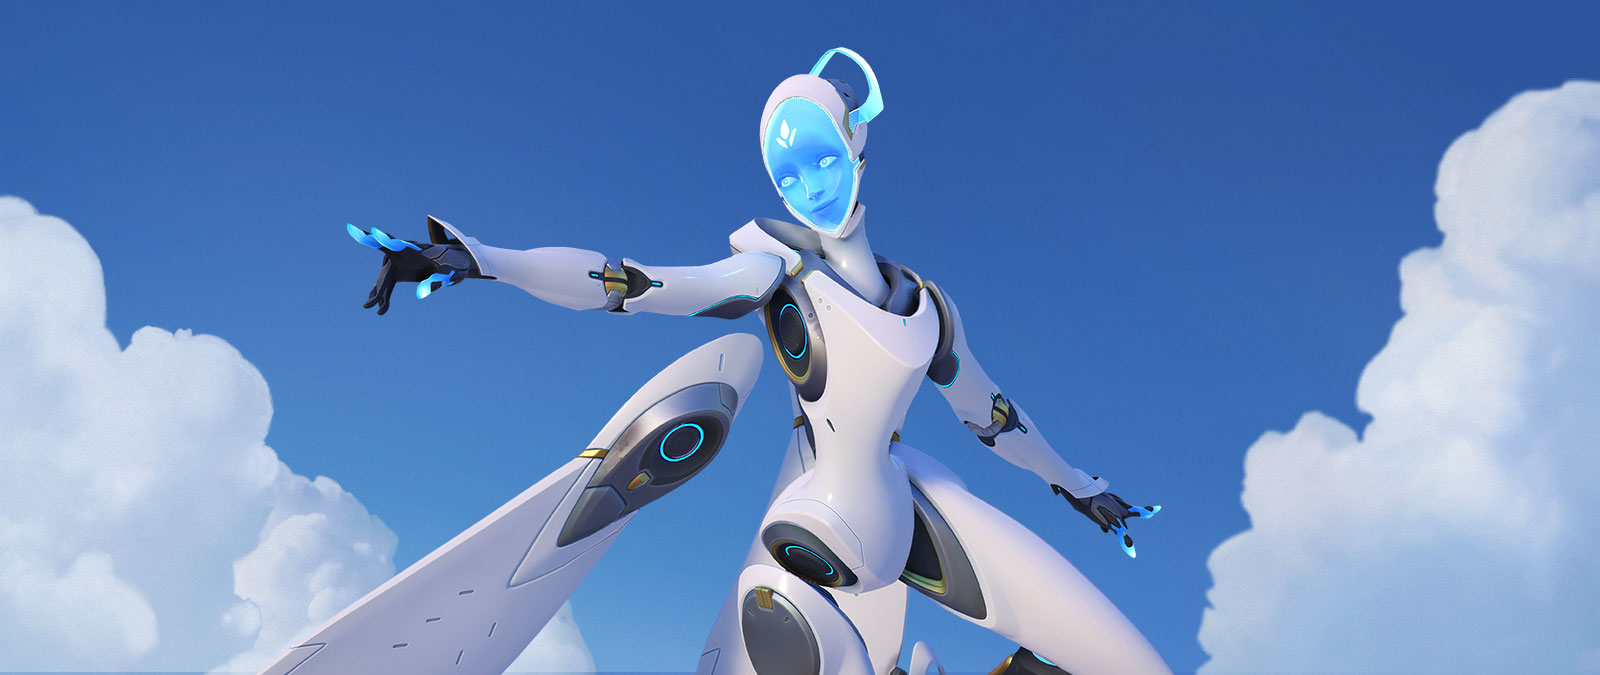 Overwatch character Echo flying through the sky in a white suit with robotic wings.